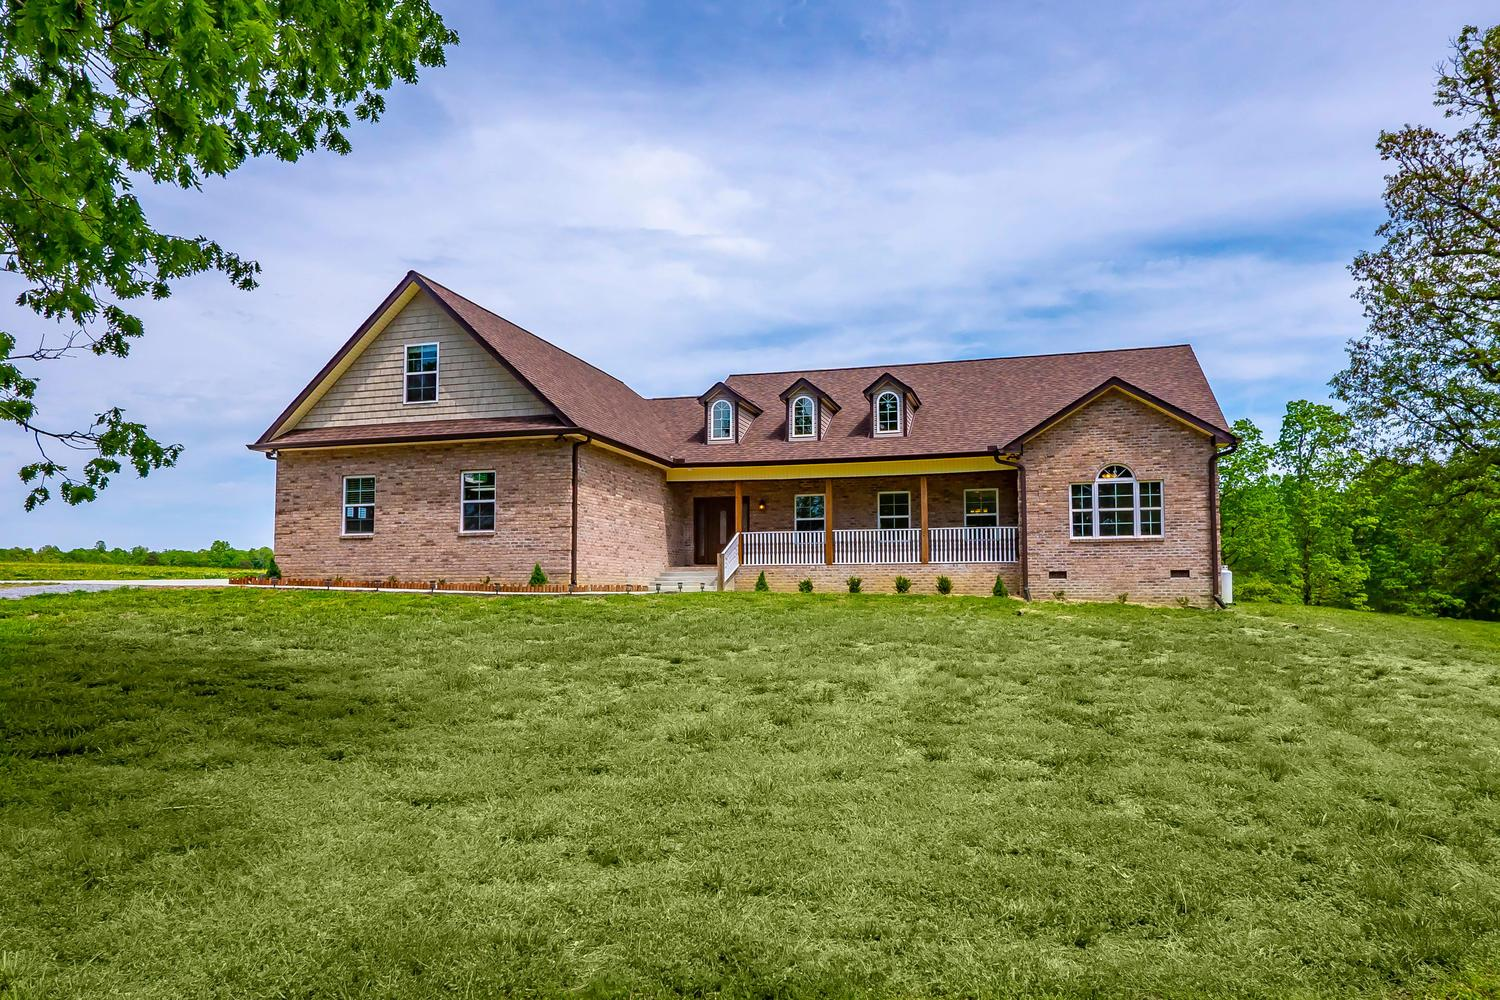 7331 Old Cox Pike, Fairview in Williamson County County, TN 37062 Home for Sale